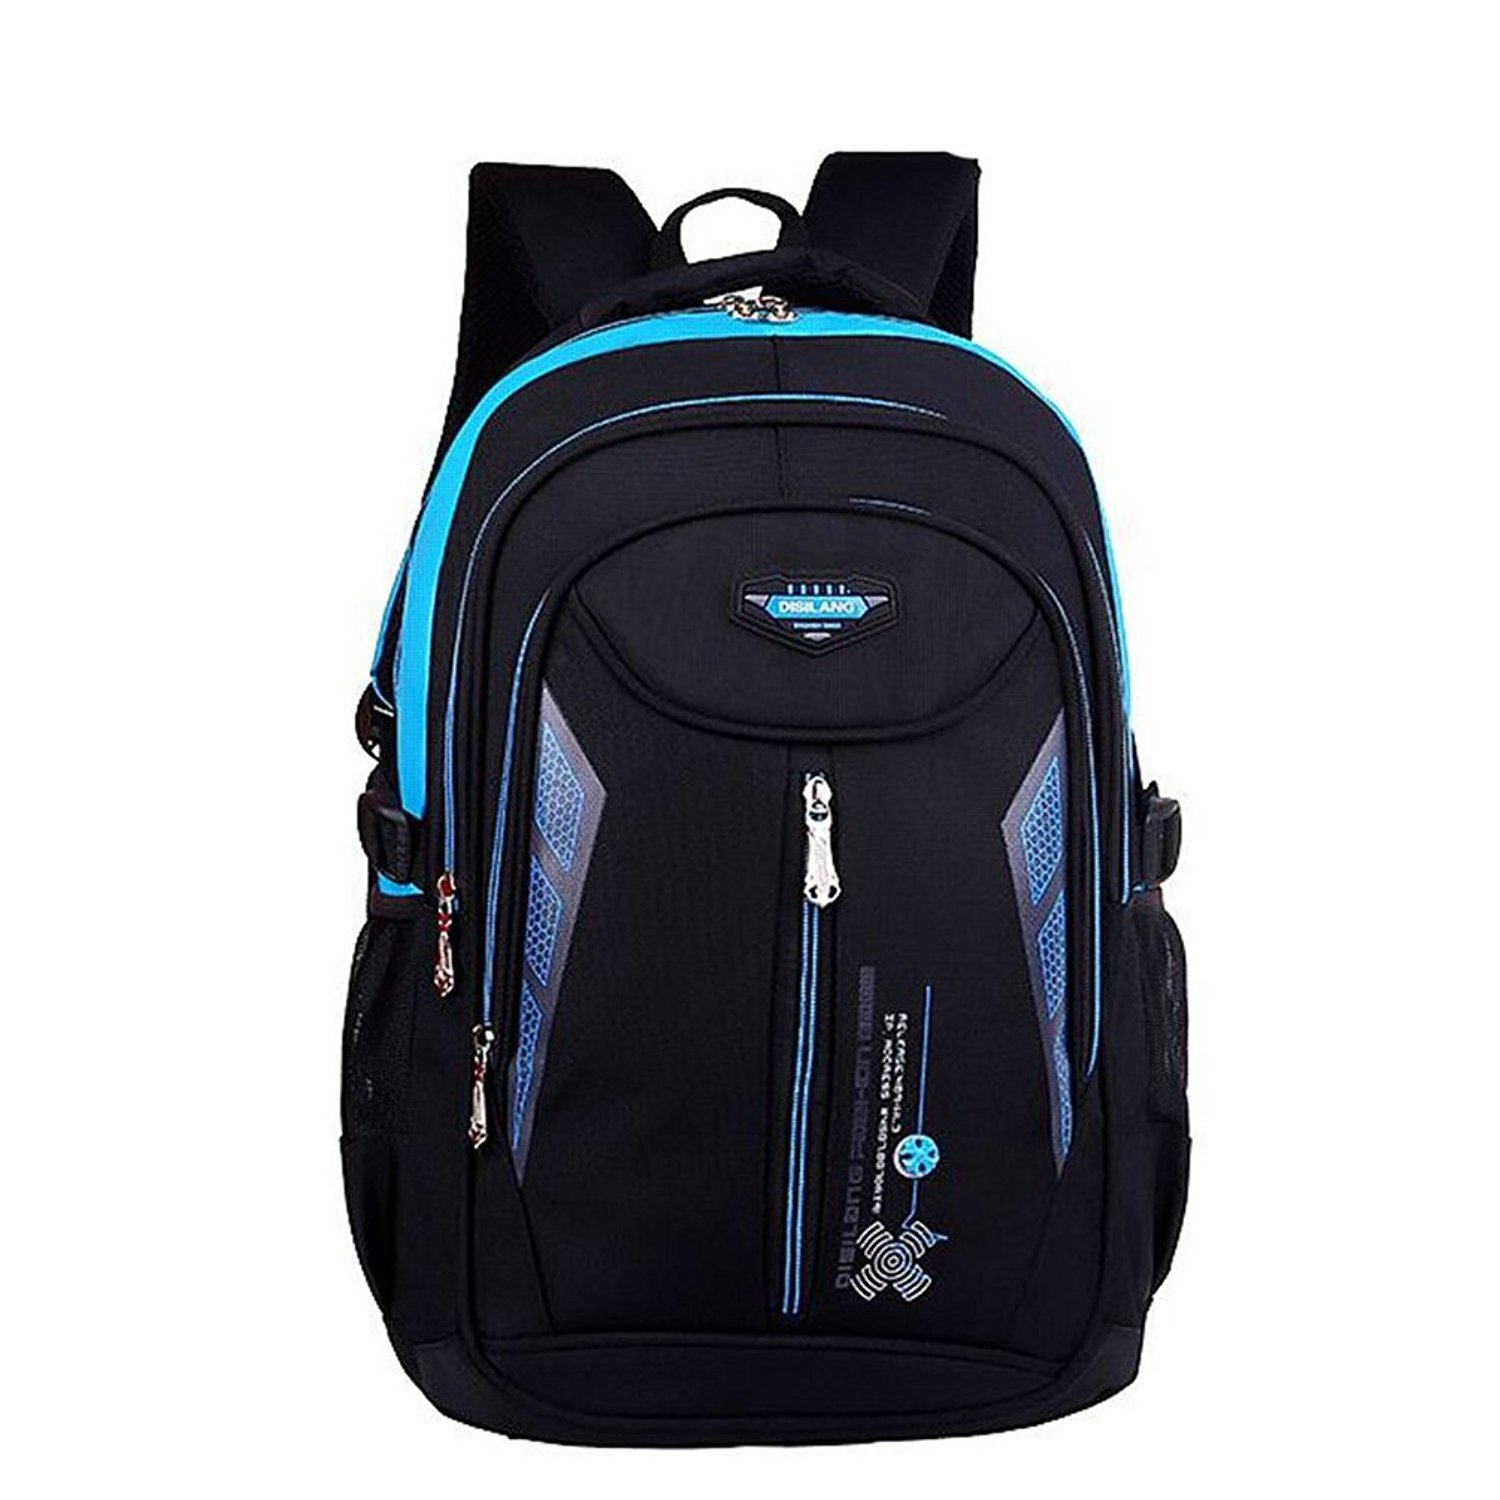 Waterproof And Fashionable Backpacks For Women